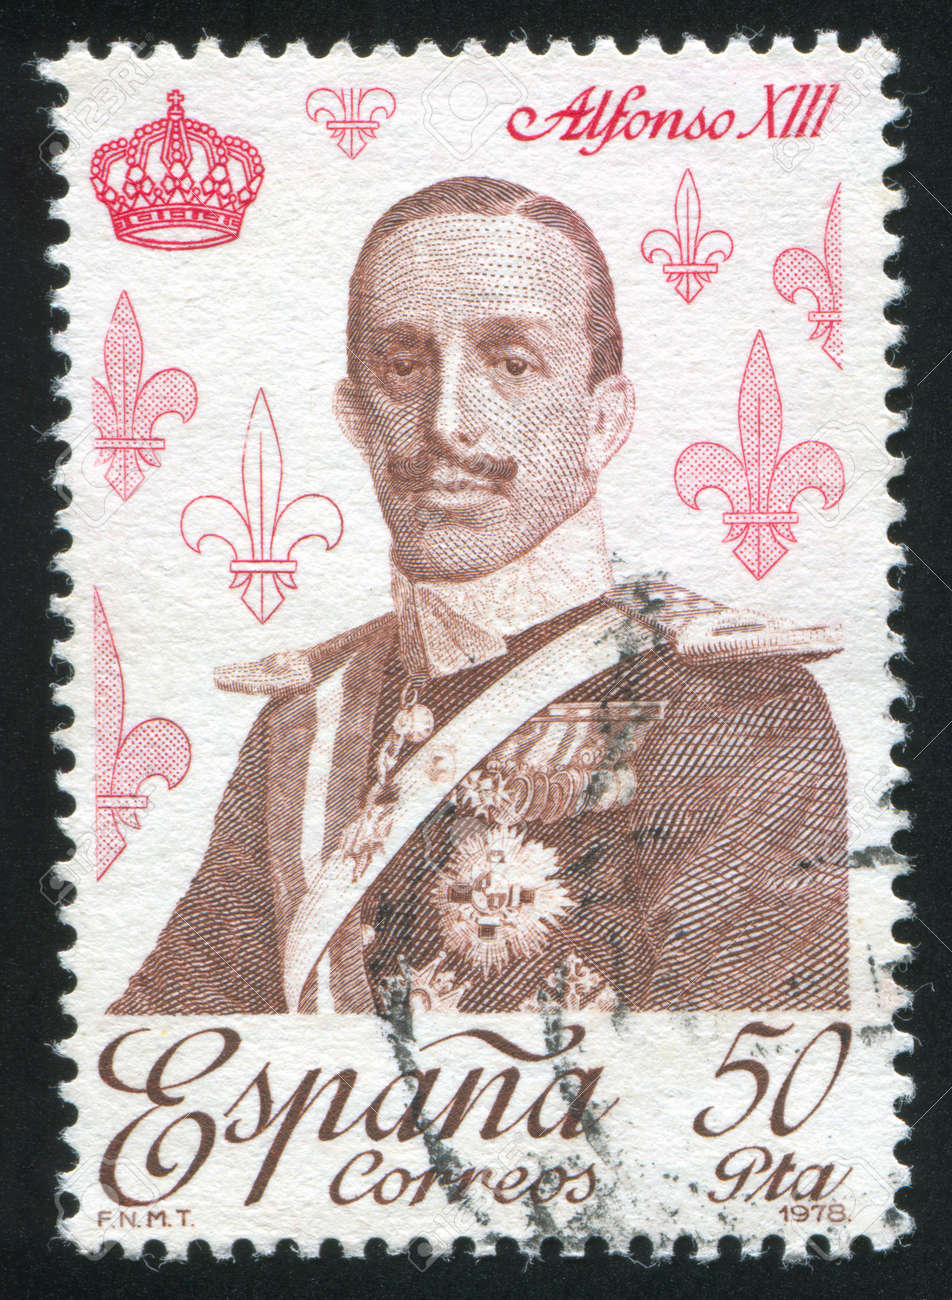 SPAIN - CIRCA 1978: stamp printed by Spain, shows Alfonso XIII, circa 1978 Stock Photo - 17145493